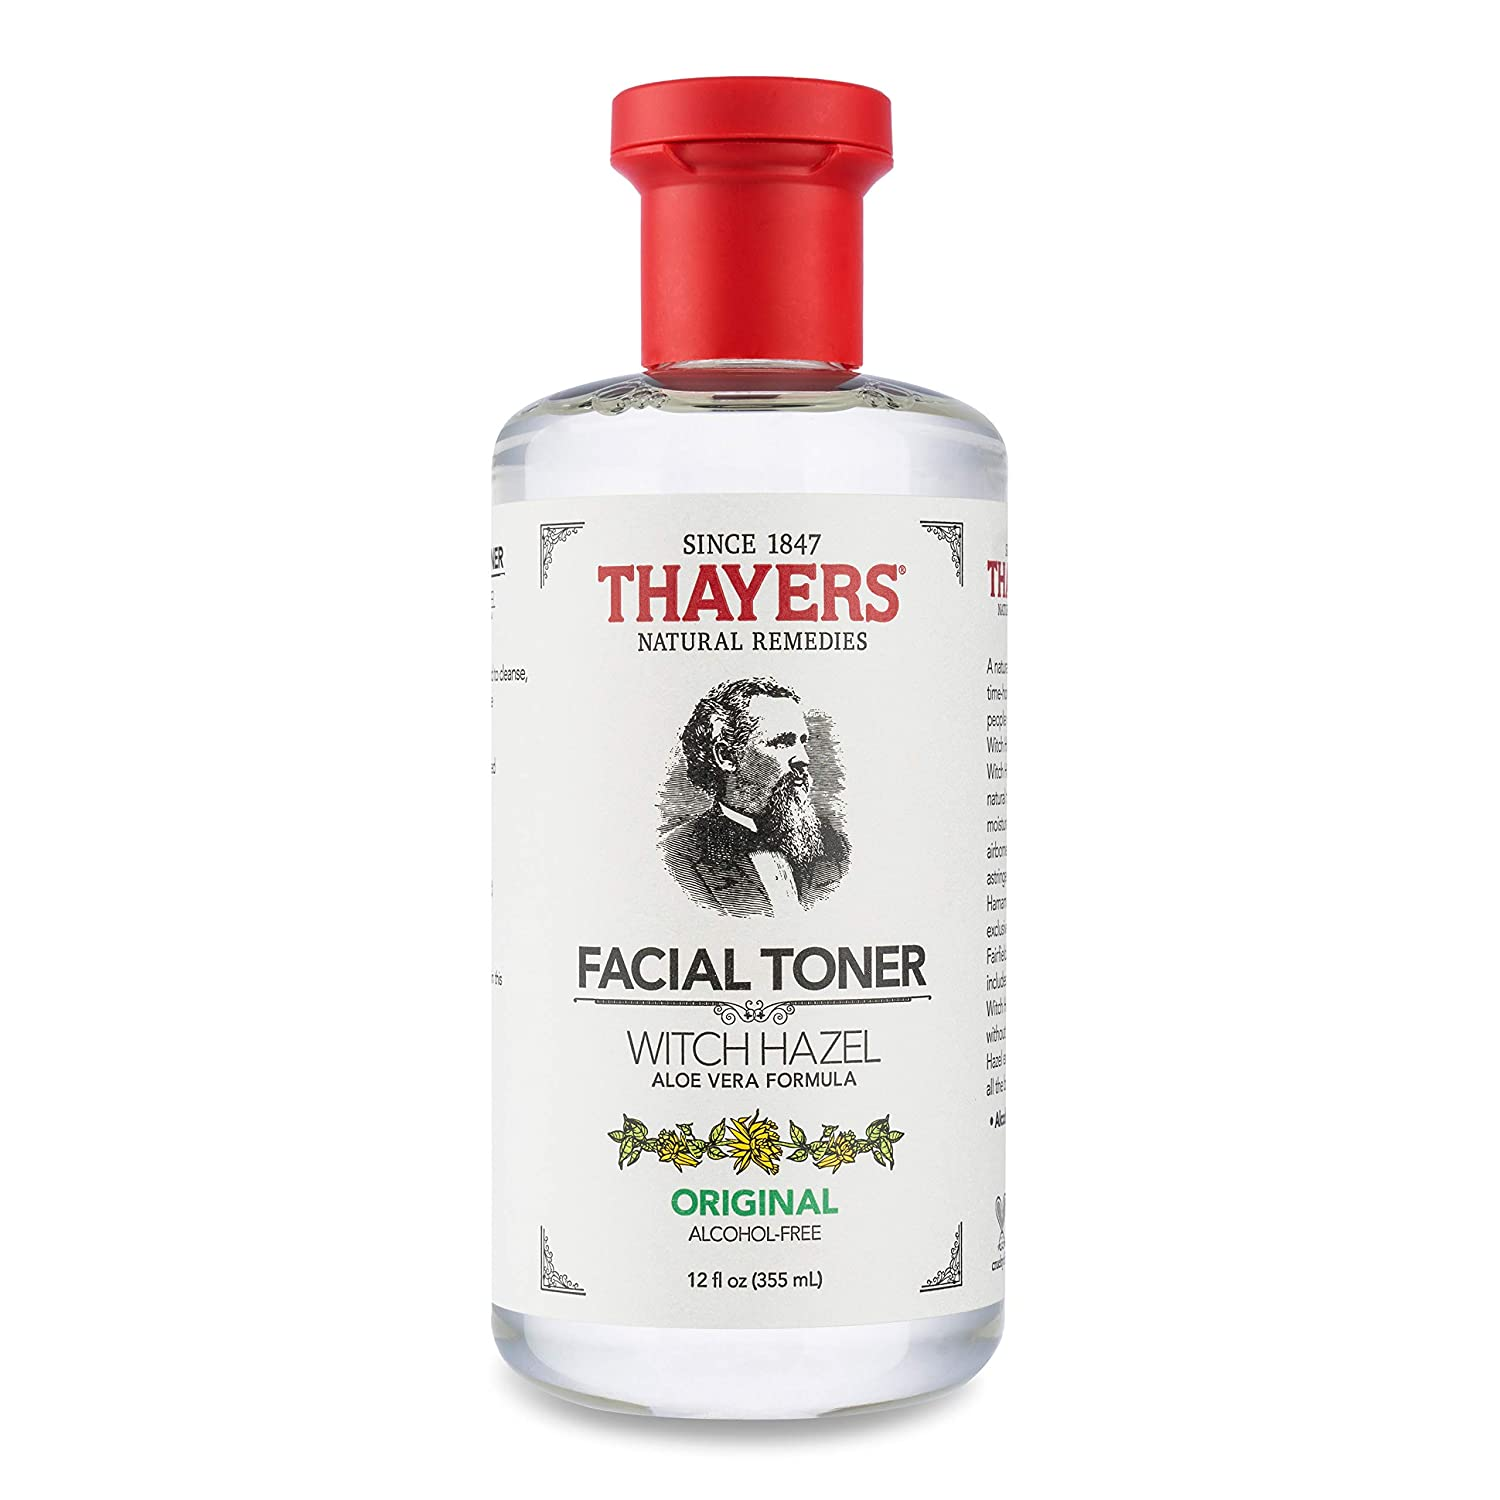 Thayers Alcohol-Free Original Witch Hazel Facial Toner with Aloe Vera Formula